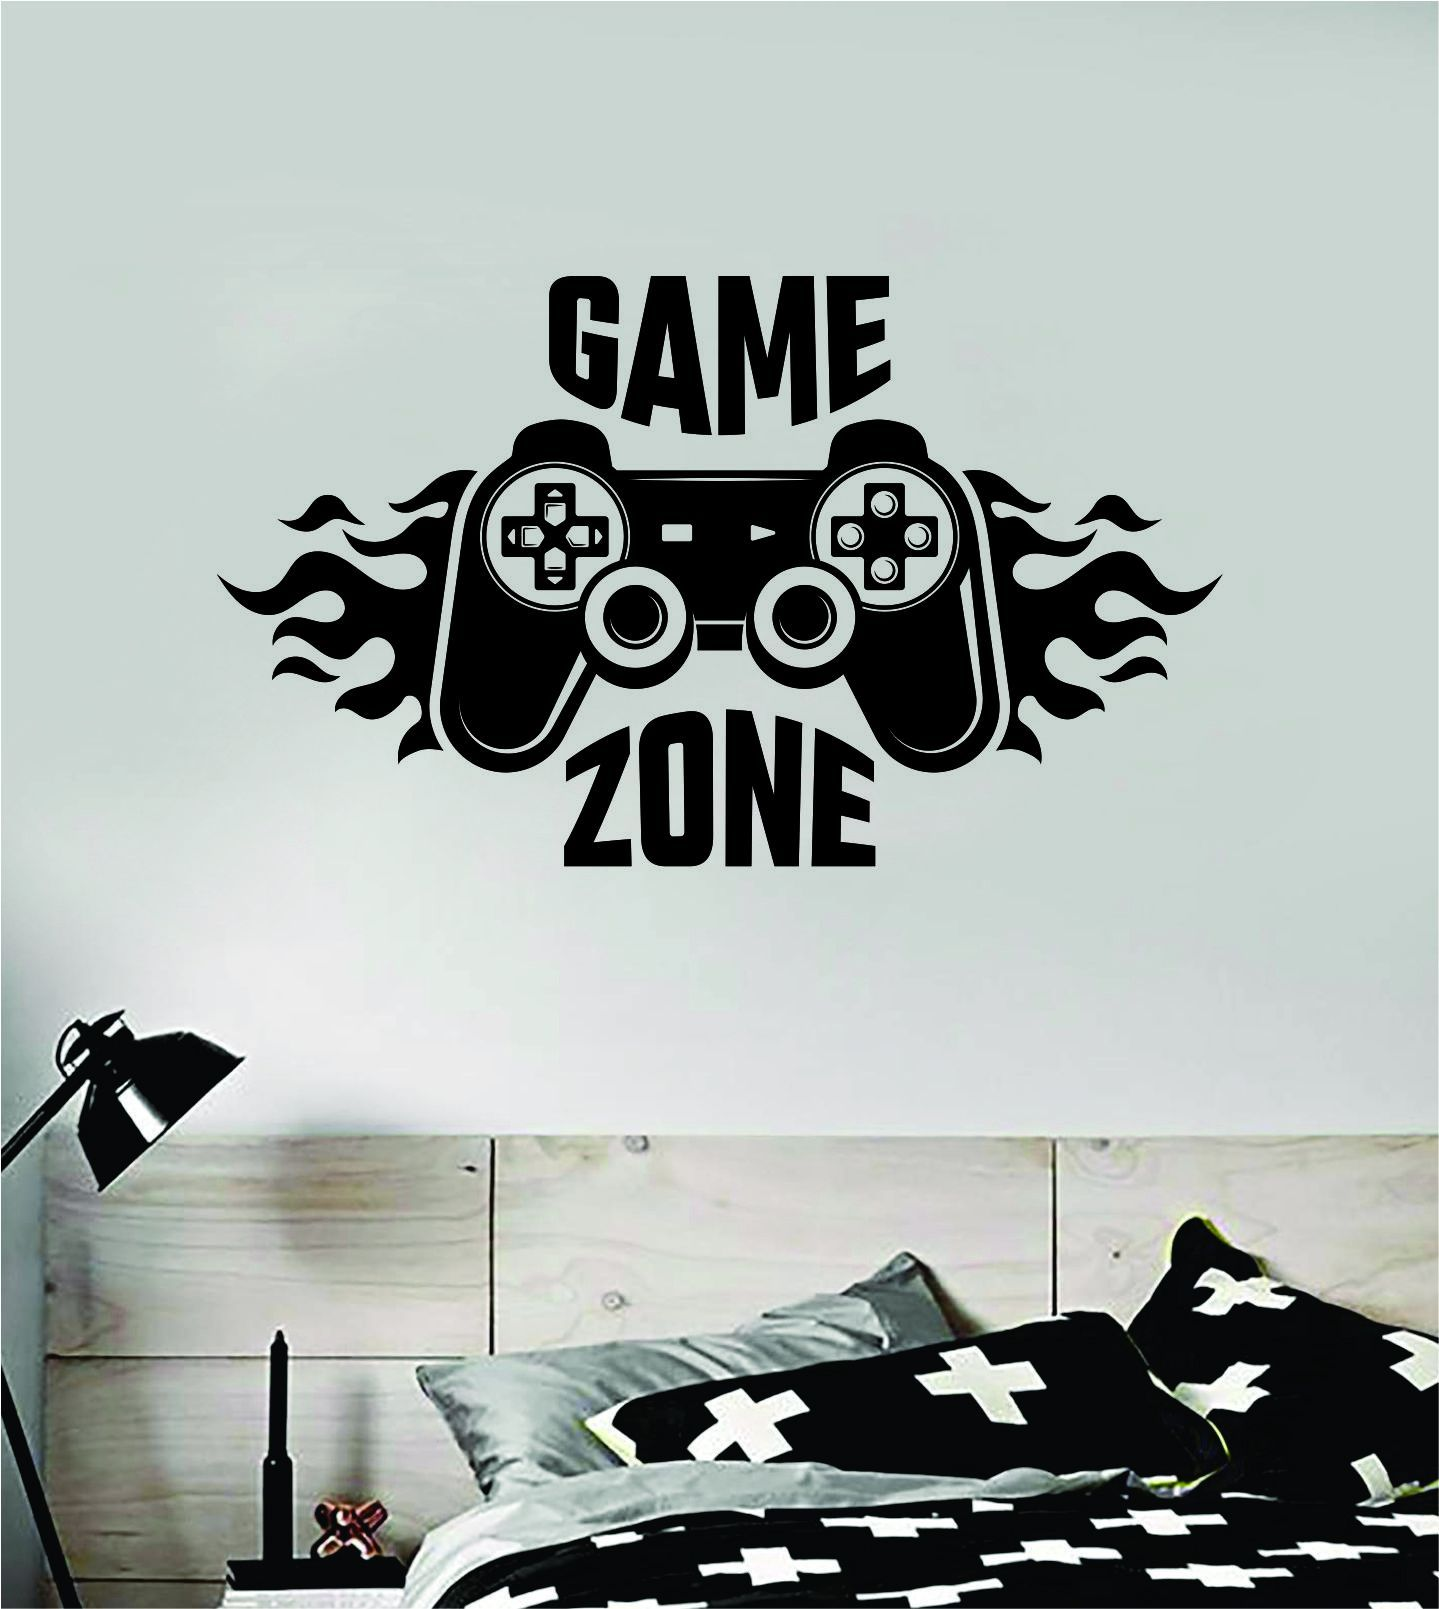 """Game ZoneThe latest in home decorating. Beautiful wall vinyl decals, that are simple to apply, are a great accent piece for any room, come in an array of colors, and are a cheap alternative to a custom paint job.Default color is black MEASUREMENTS: 28"""" x 16 1/2"""" About Our Wall Decals:* Each decal is made of high quality, self-adhesive and waterproof vinyl.* Our vinyl is rated to last 7 years outdoors and even longer indoors.* Decals can be applied to any clean, smooth and flat surface. Put them"""